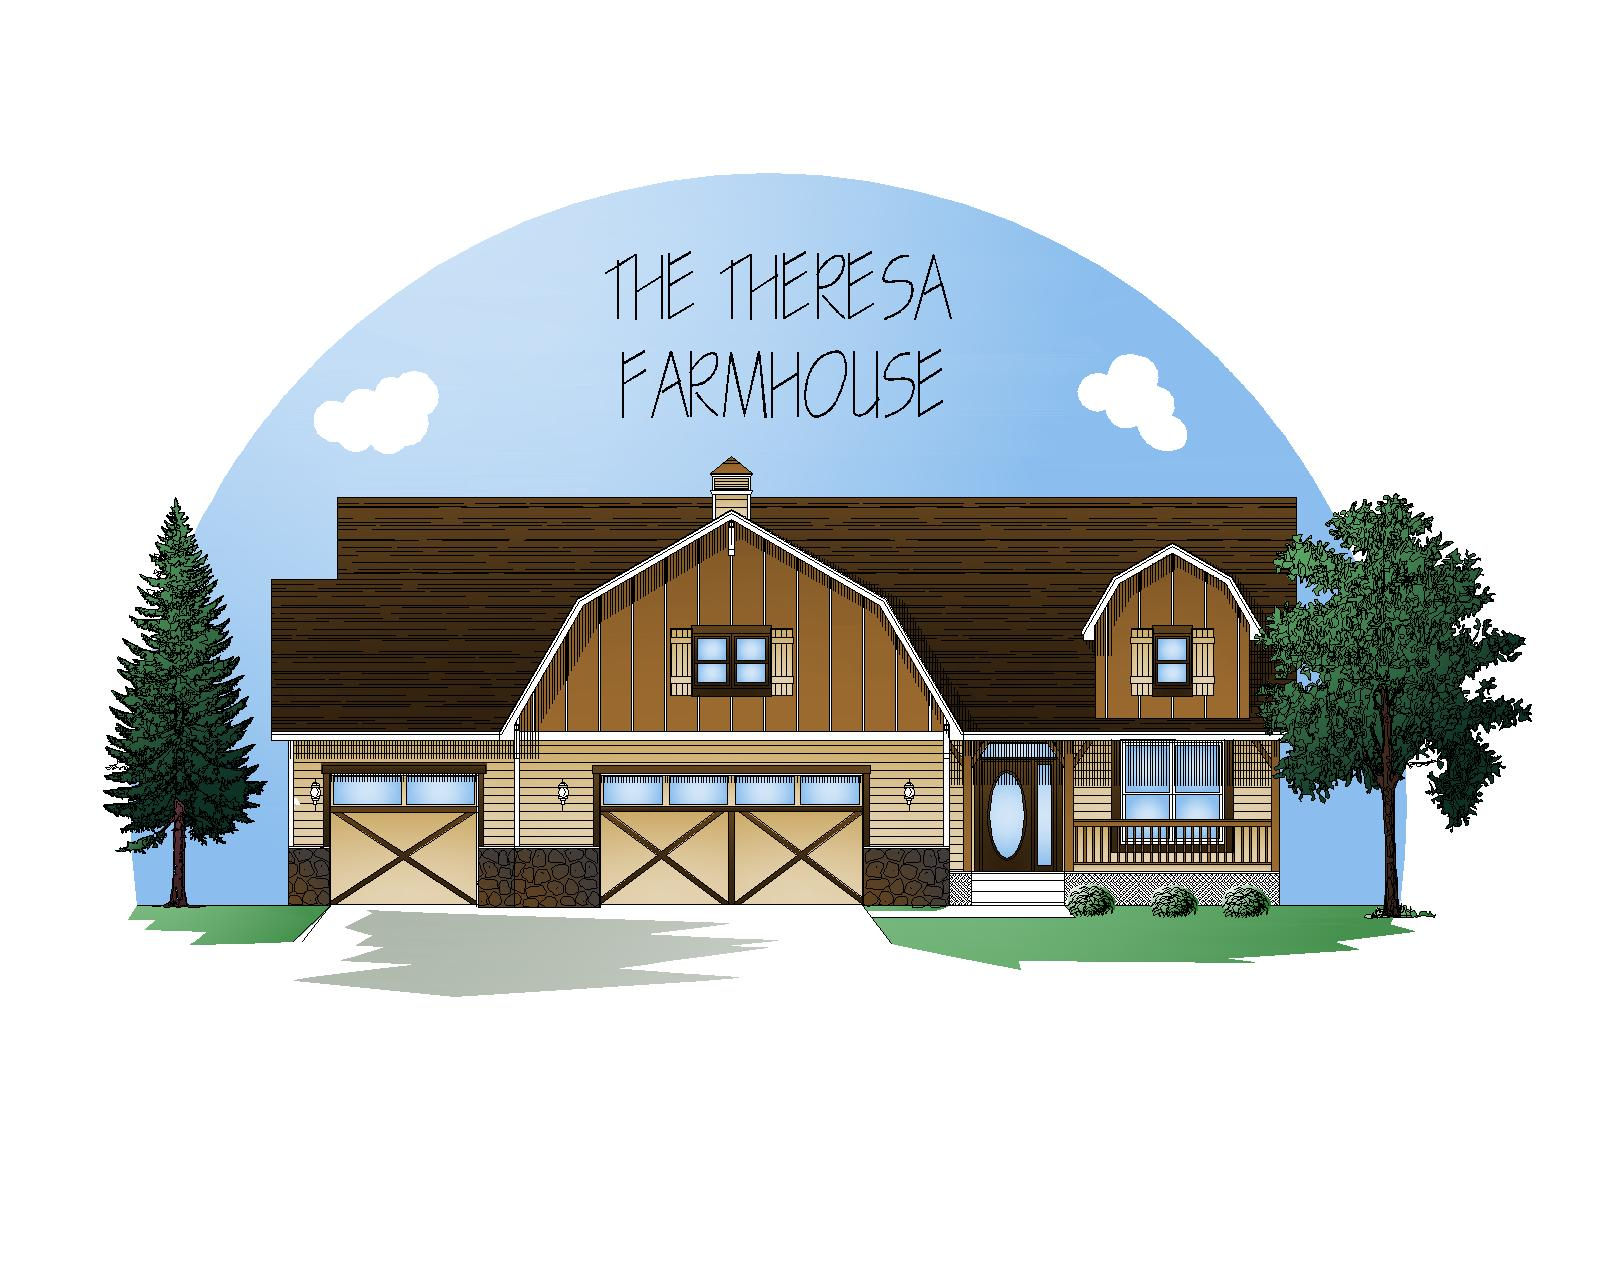 Farmhouse Theresa